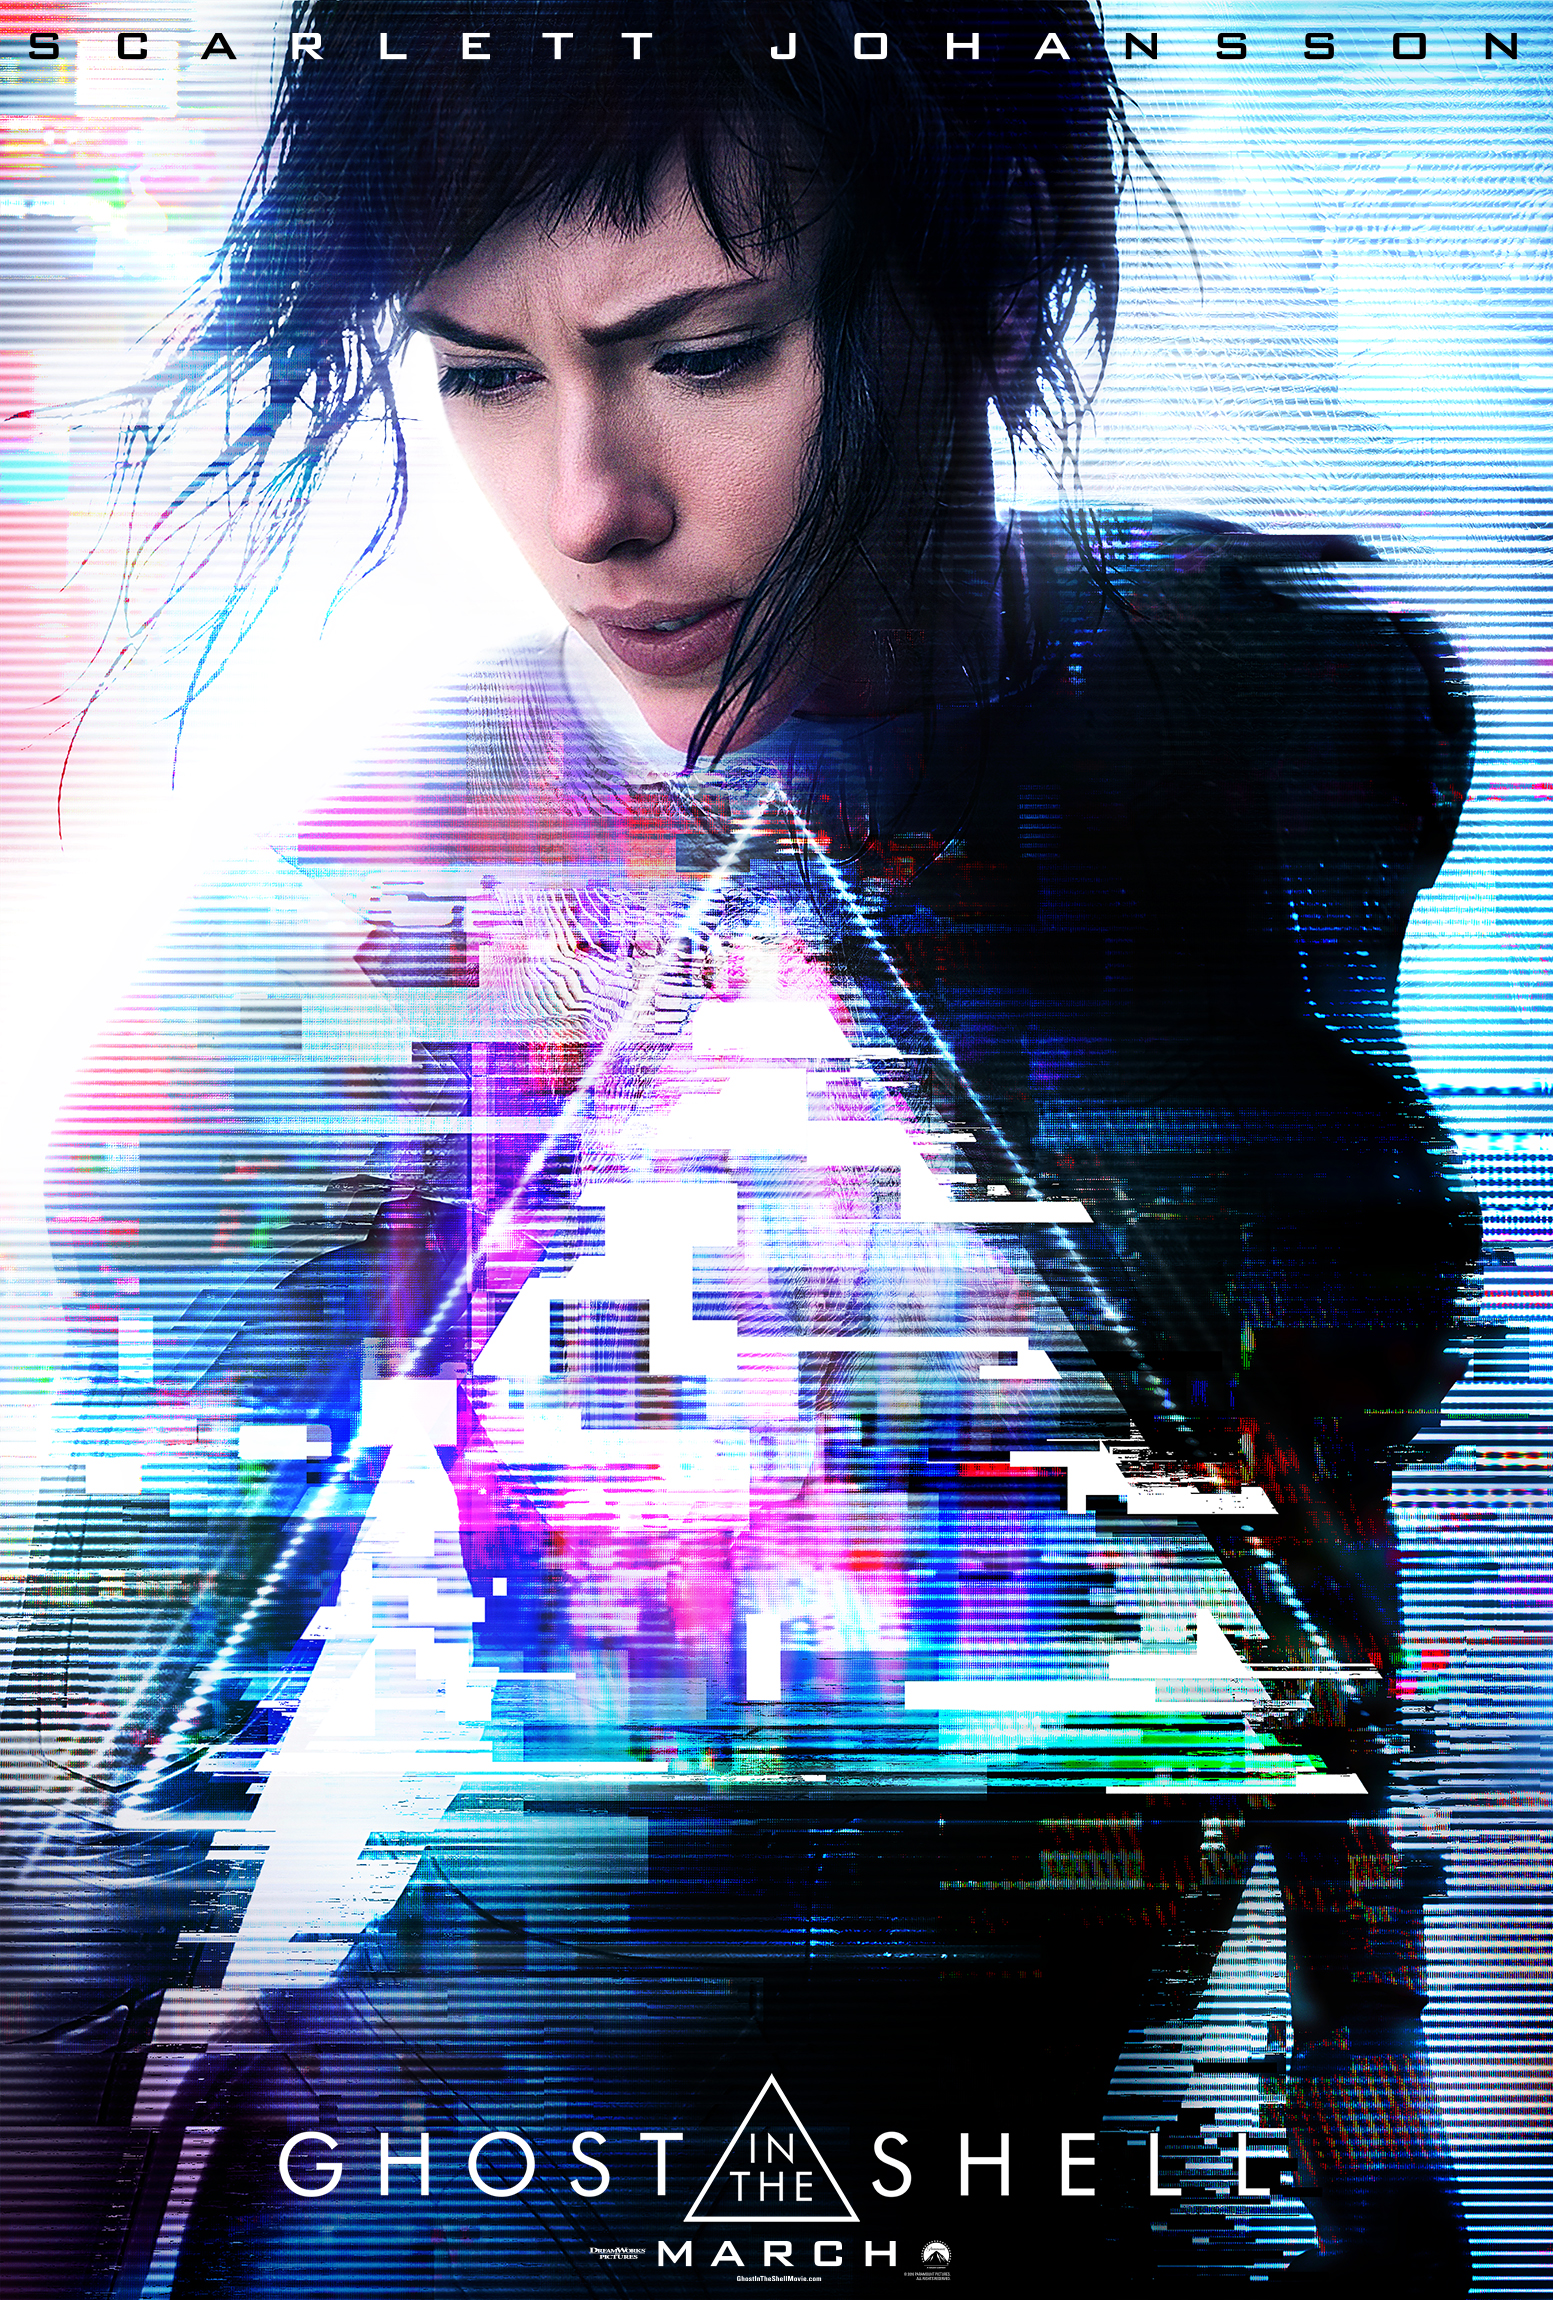 Ghost in the Shell (2017) Technical Specifications